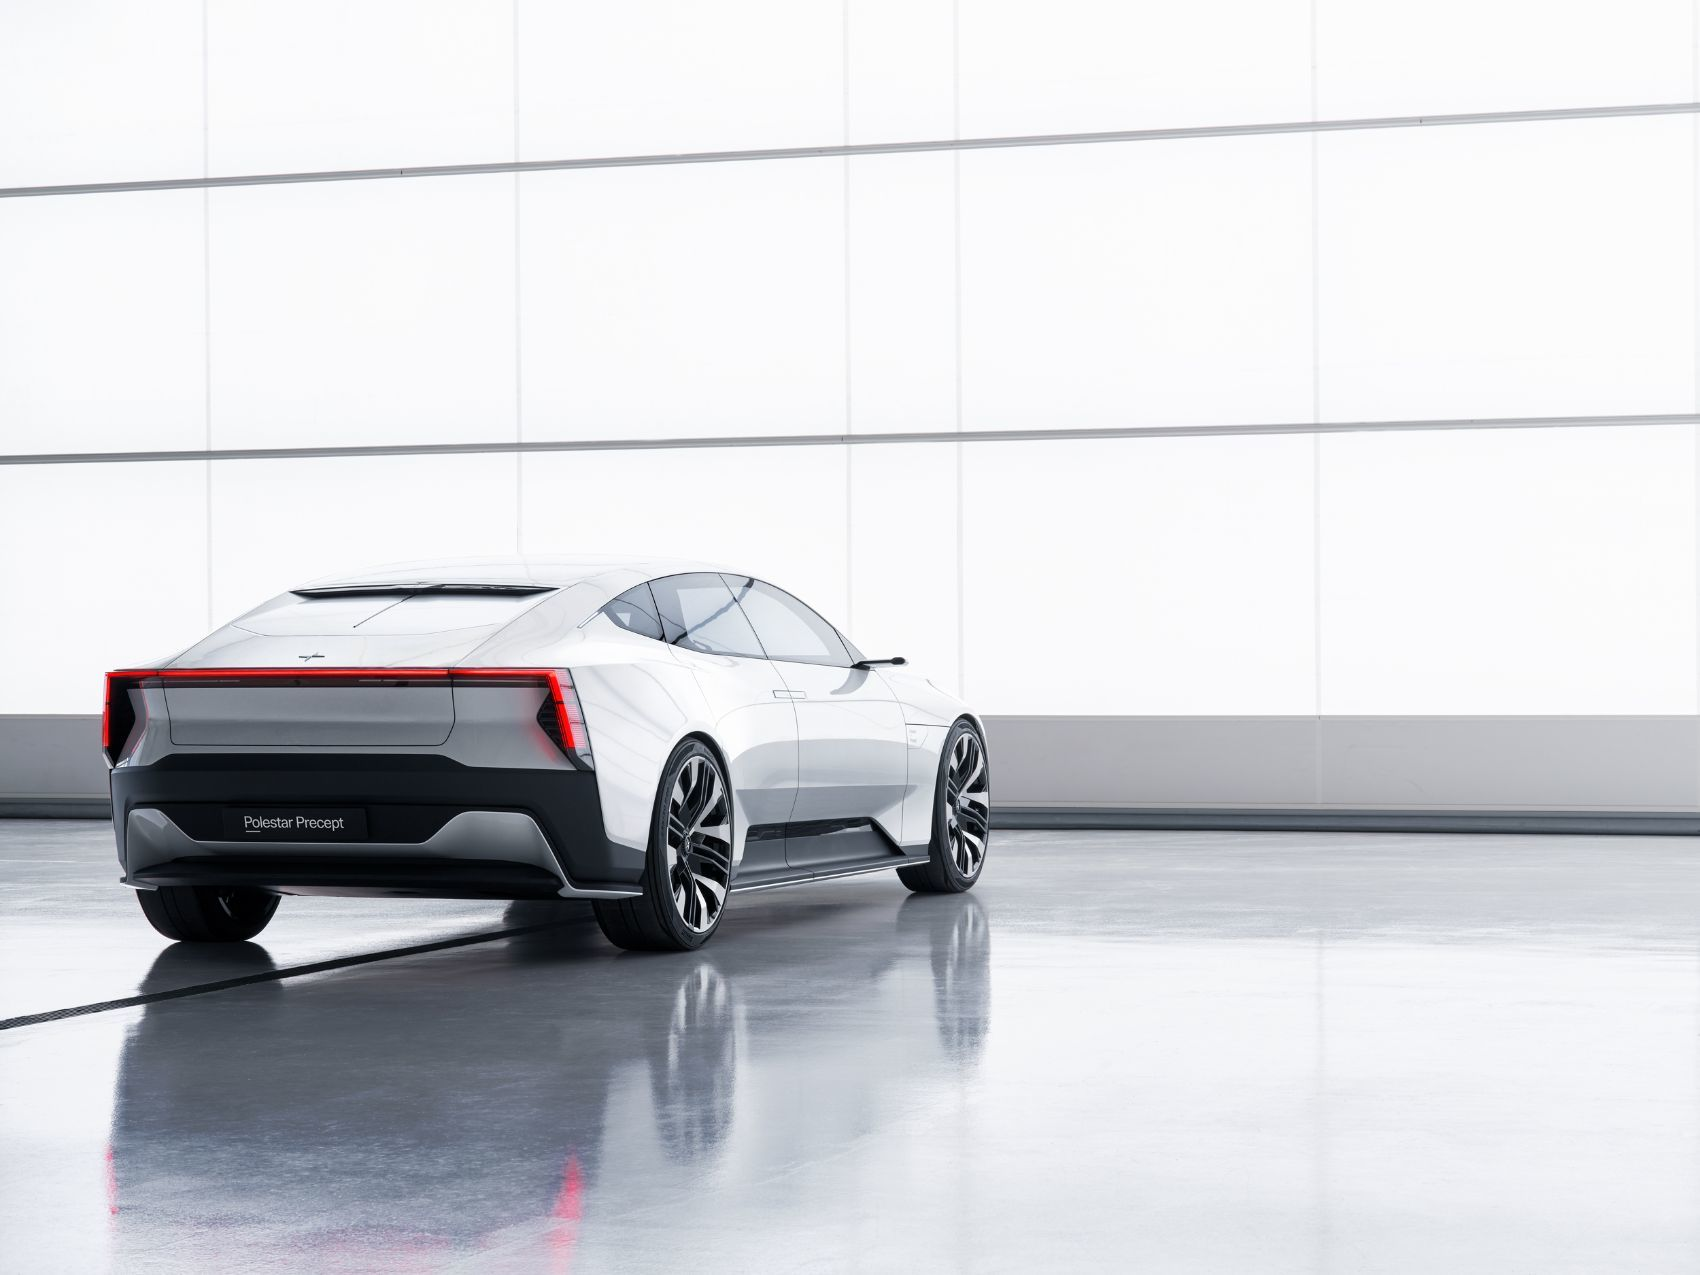 Polestar Precept: Just Science Fiction or Something More?